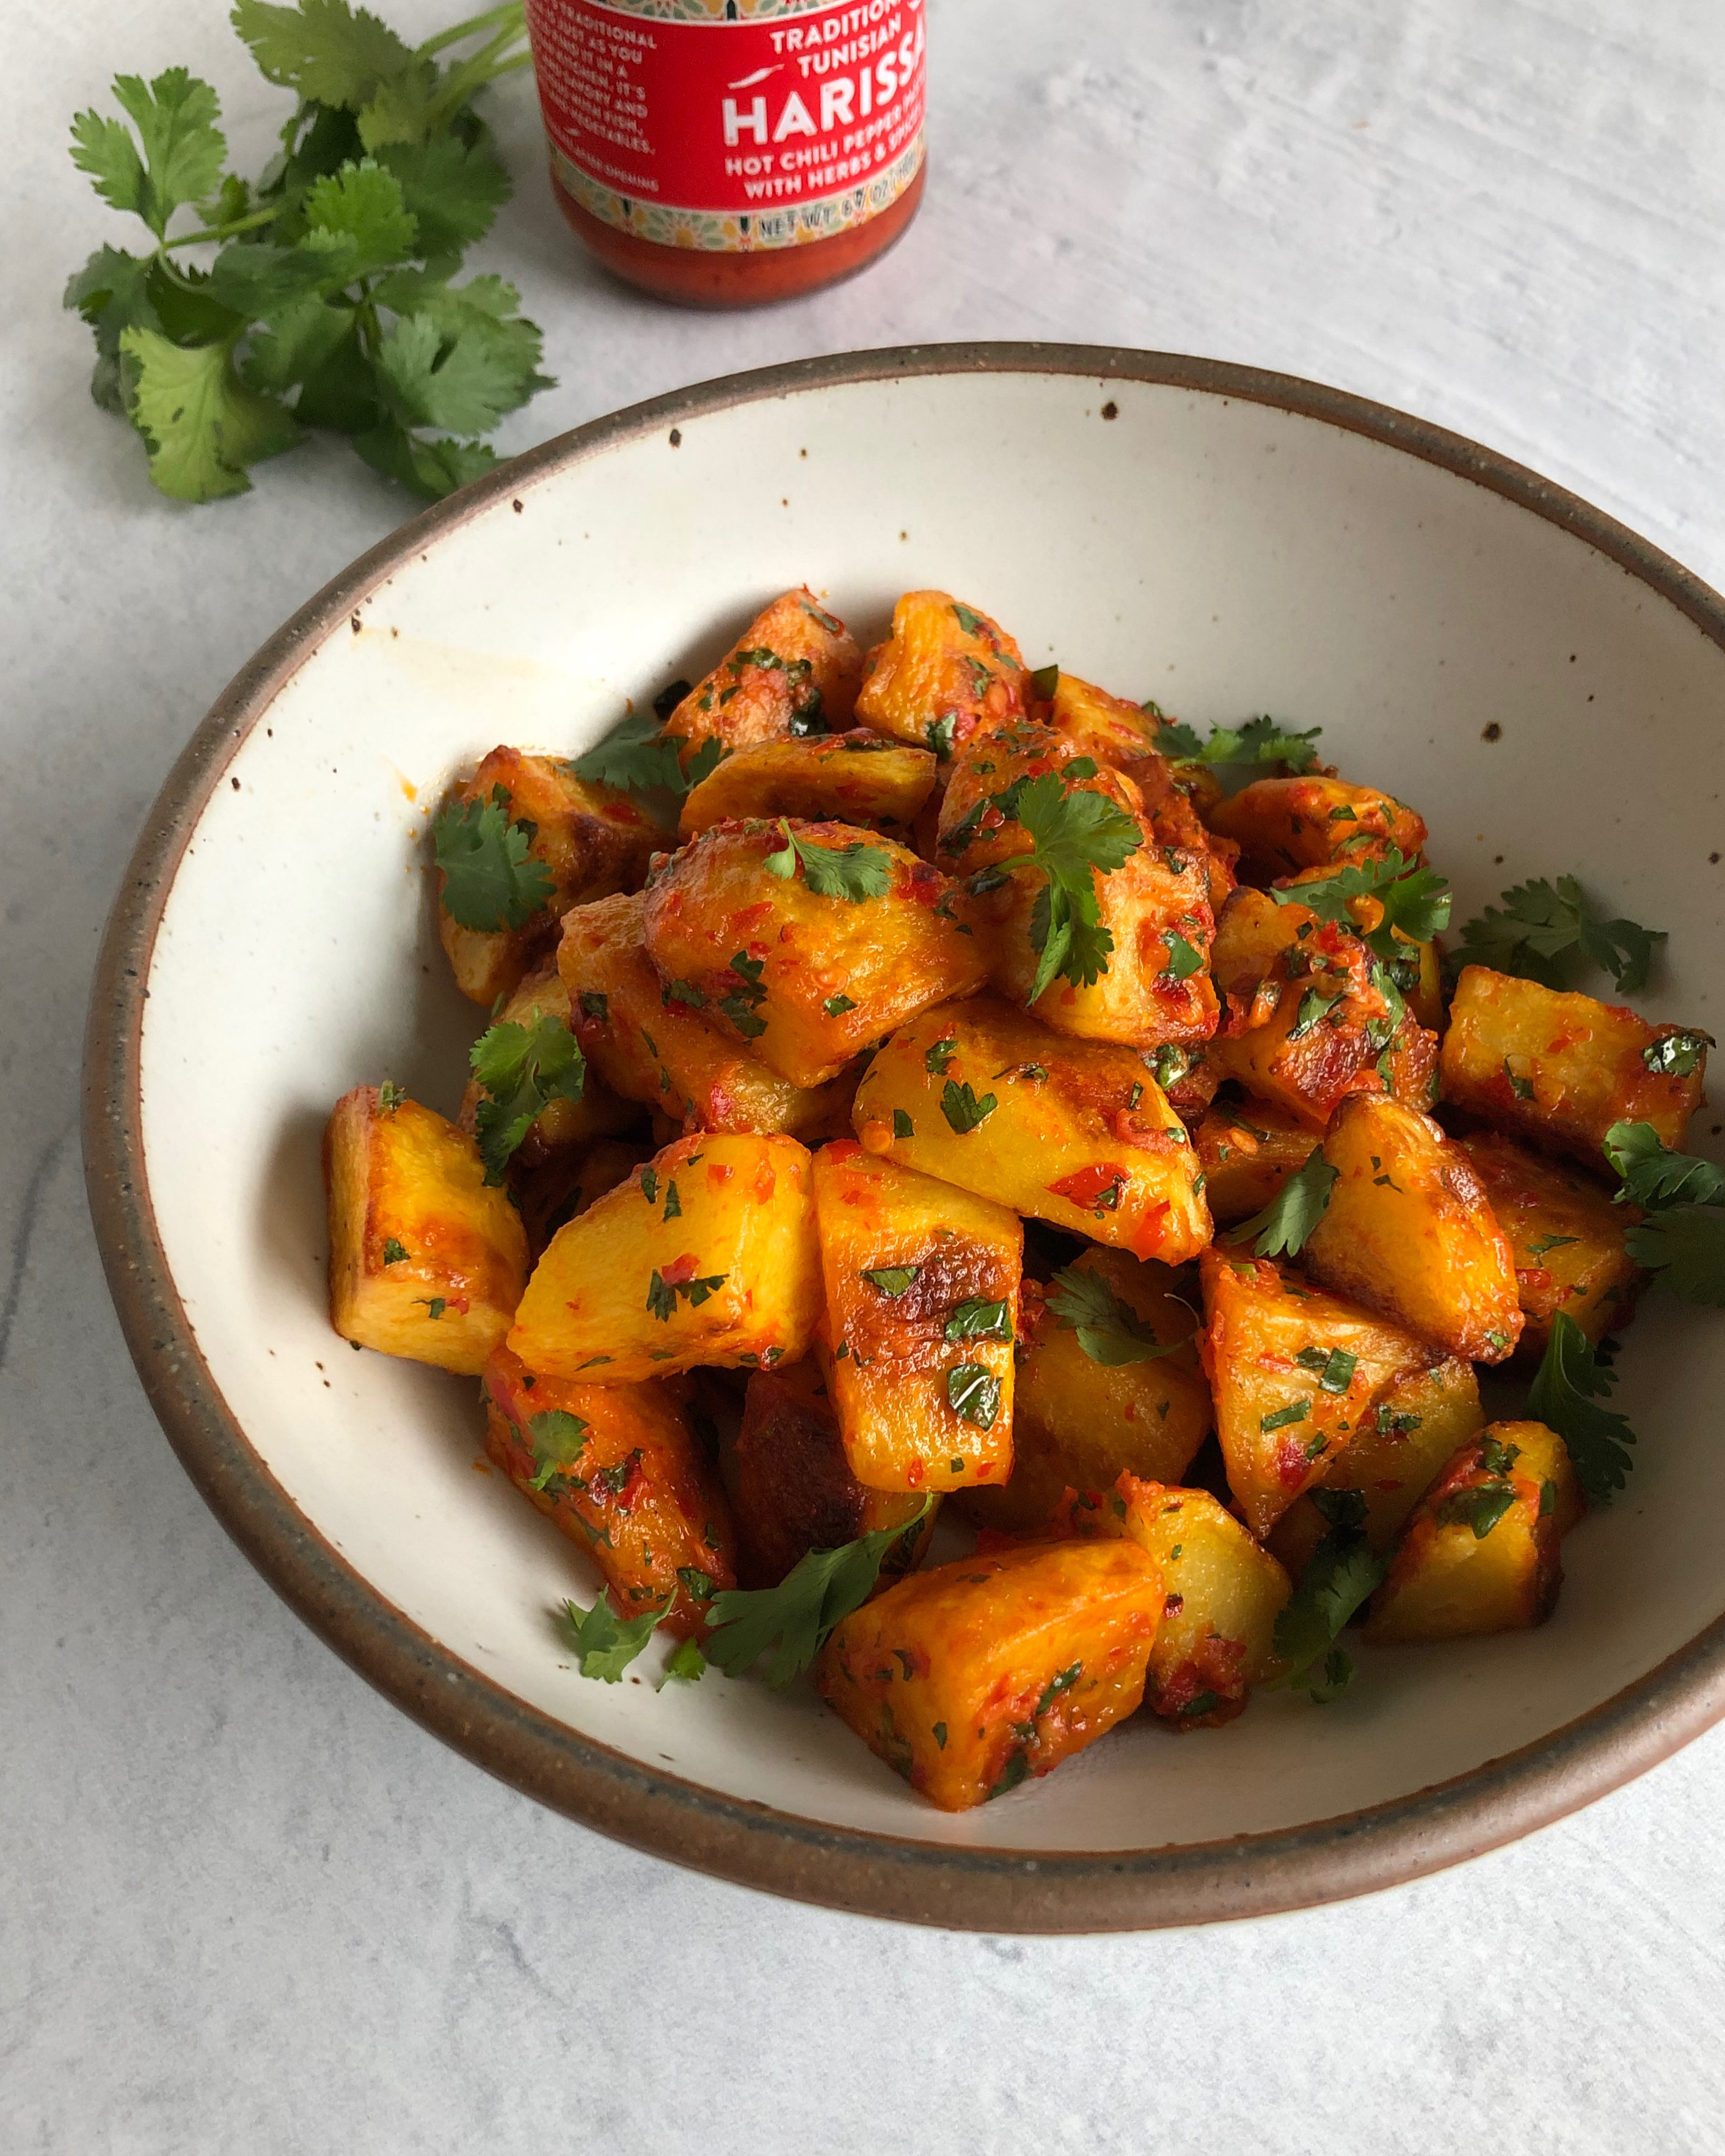 Roasted Potatoes with Harissa Butter